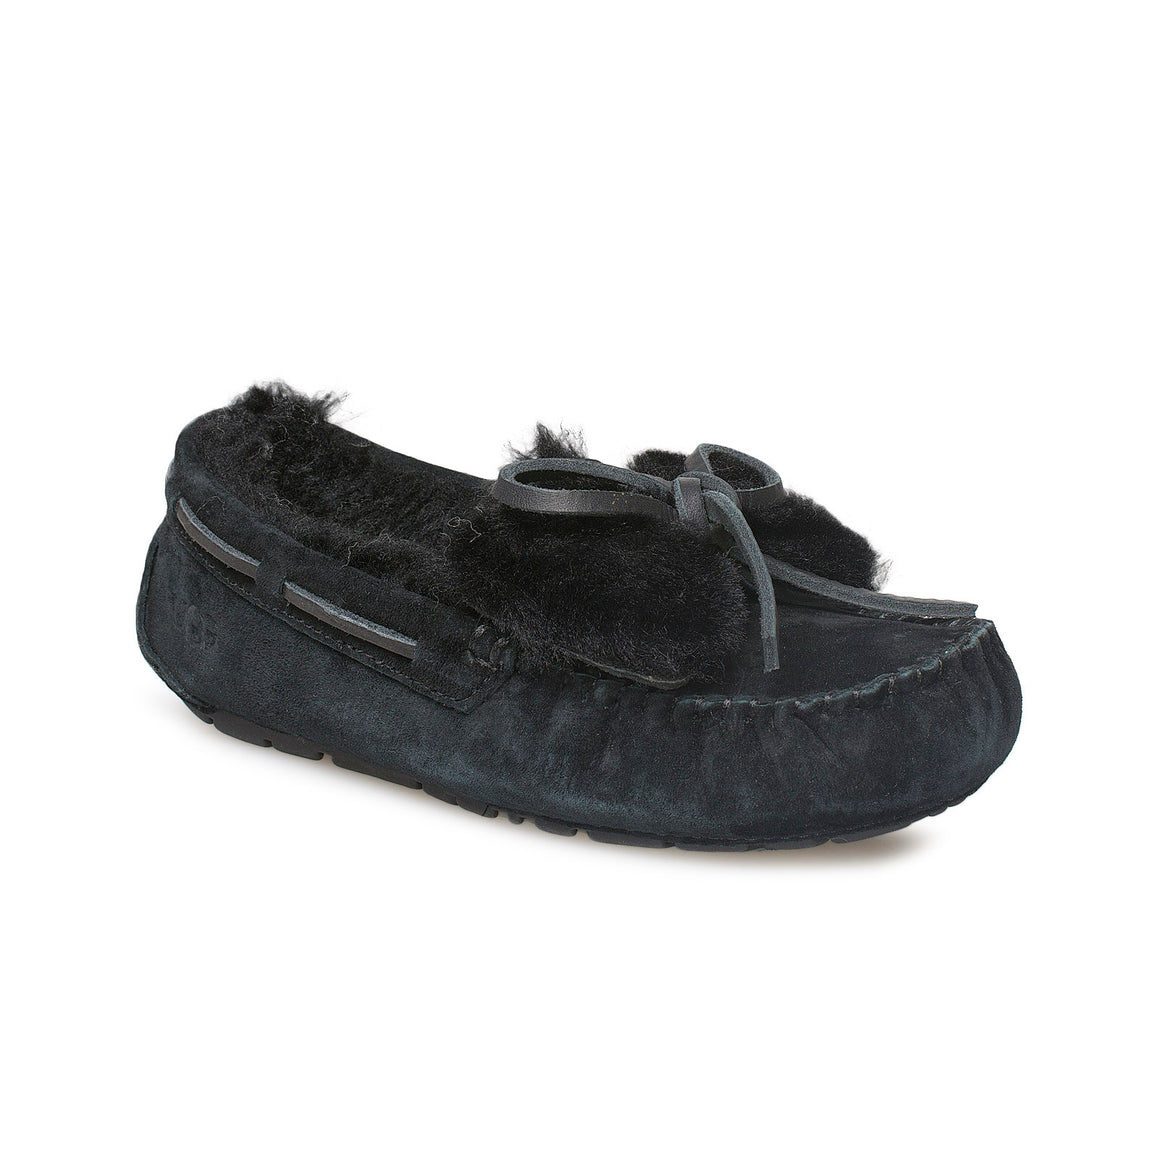 UGG Dakota Double Bow Black Slippers - Women's